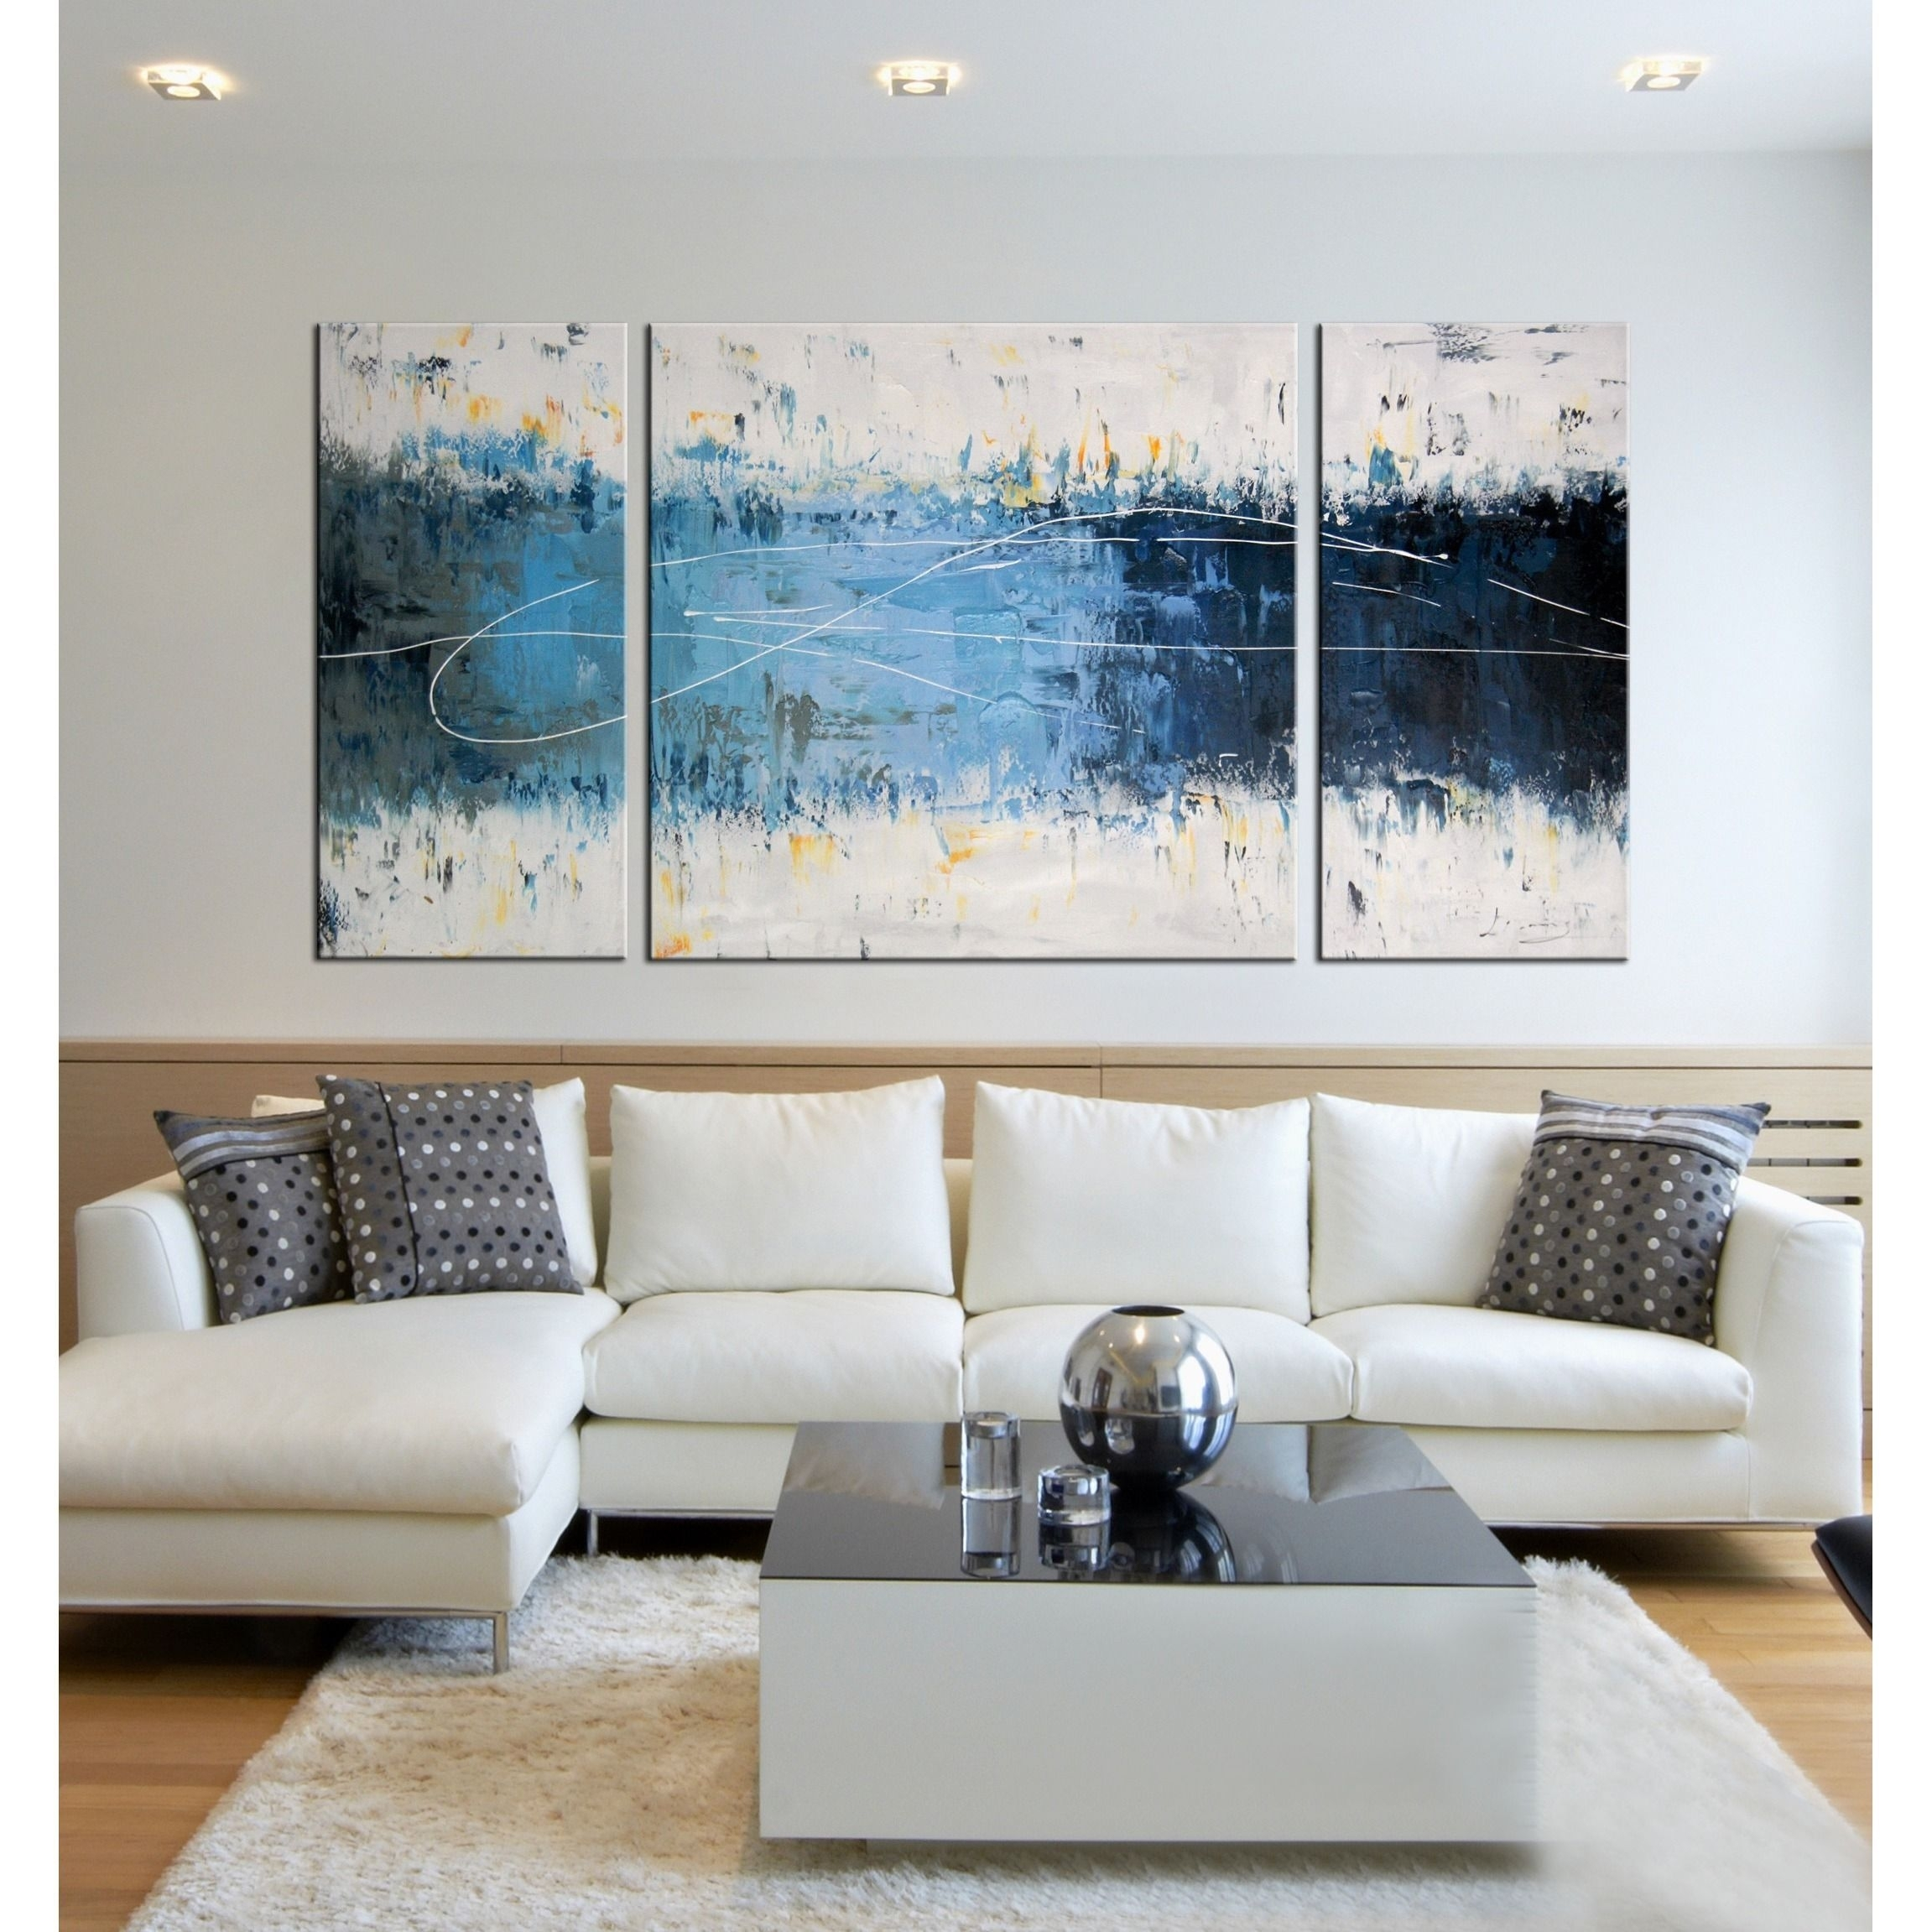 Overstock Wall Art – Culturehoop Throughout Current Overstock Wall Art (View 11 of 20)